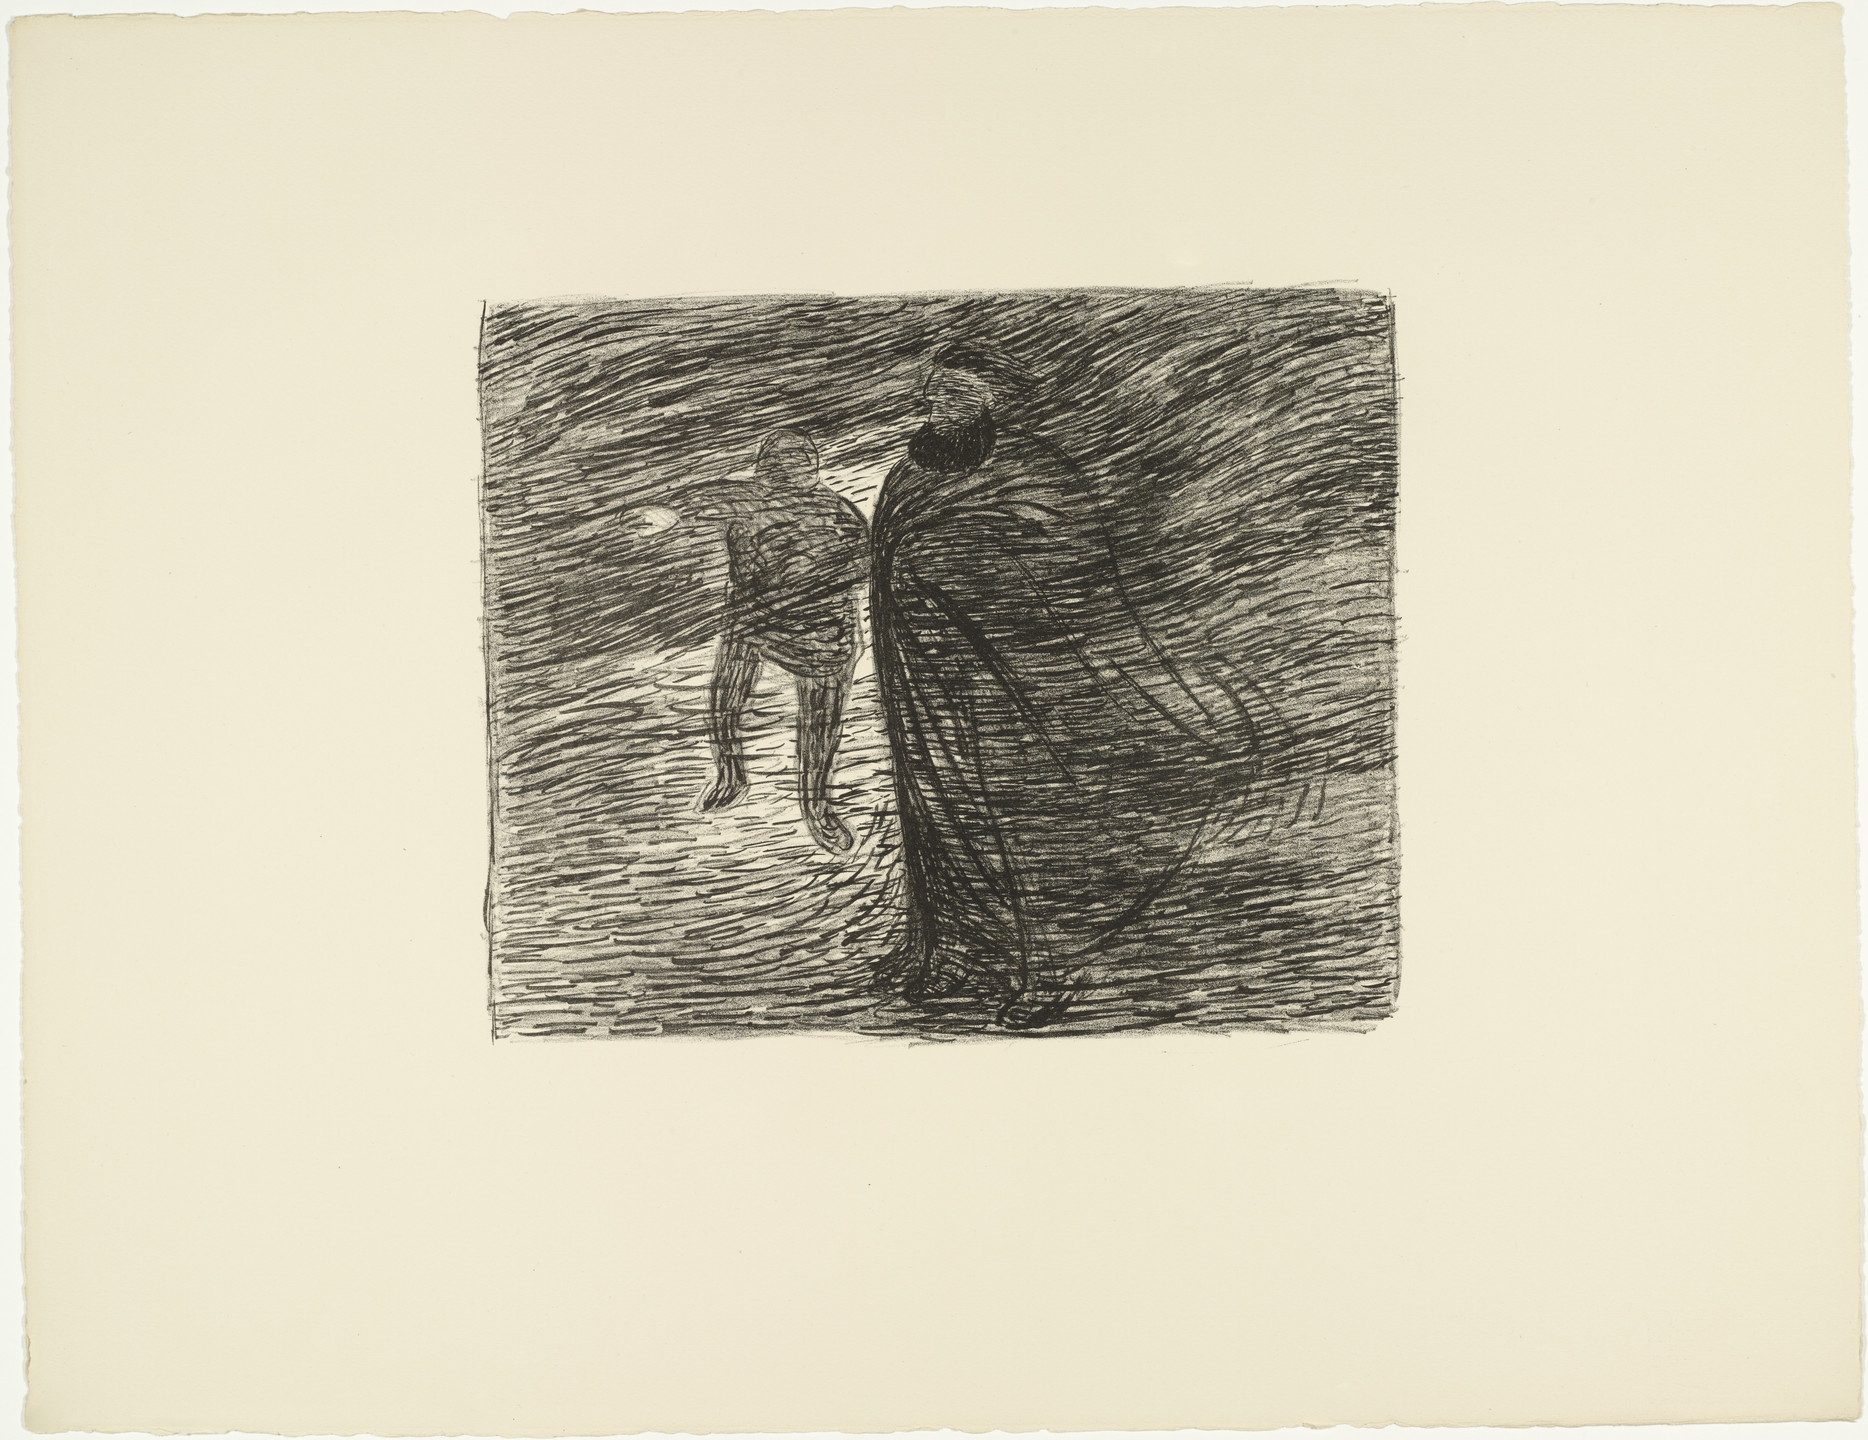 Ernst Barlach. Specter in the Fog (Erscheinung im Nebel) from The Dead Day (Der tote Tag). (1910-11, published 1912)